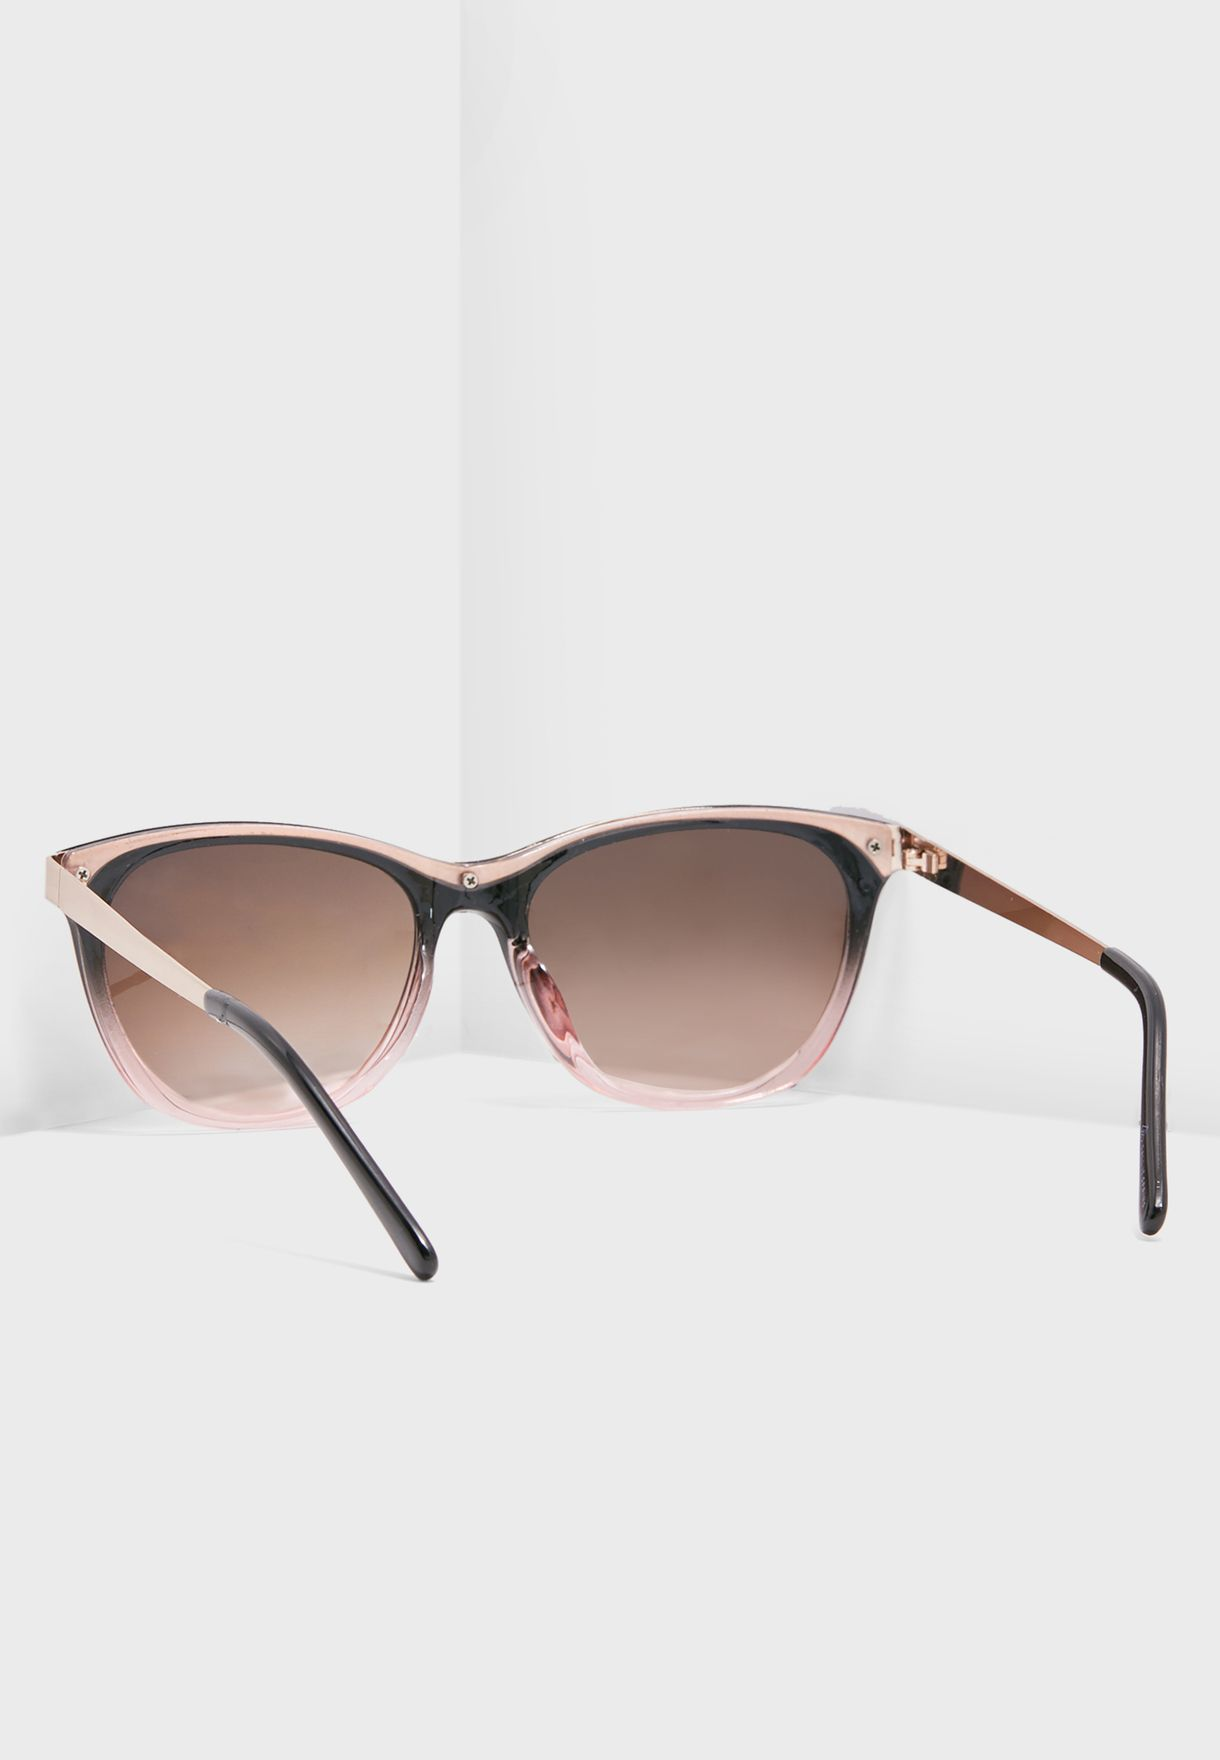 Daleside Sunglass